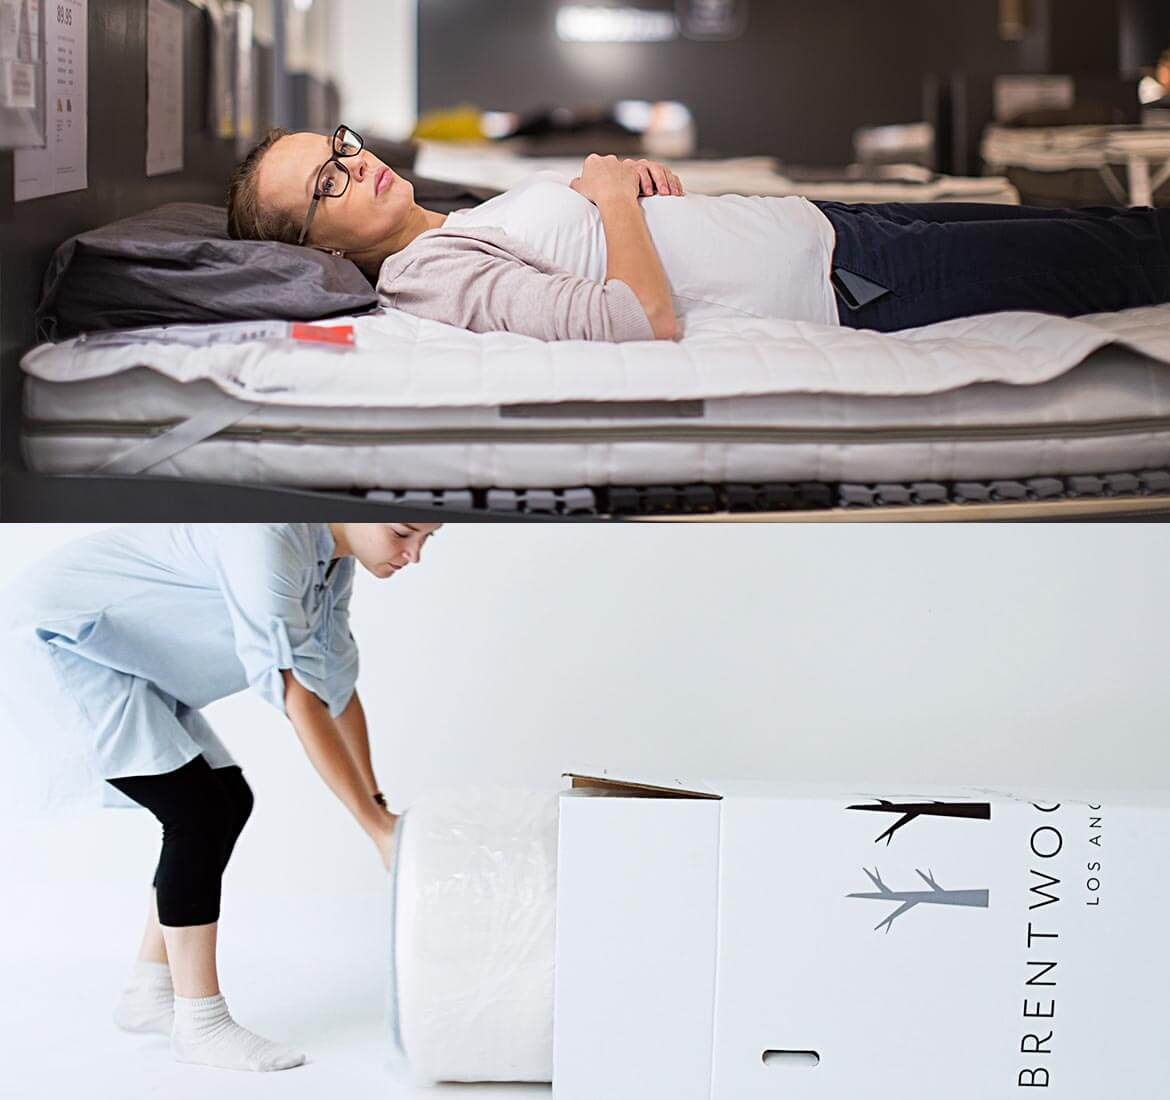 The Palmetto mattress by Brentwood Home is from their Natural Latex line, and comes compressed and shipped straight to your door with free shipping and returns.